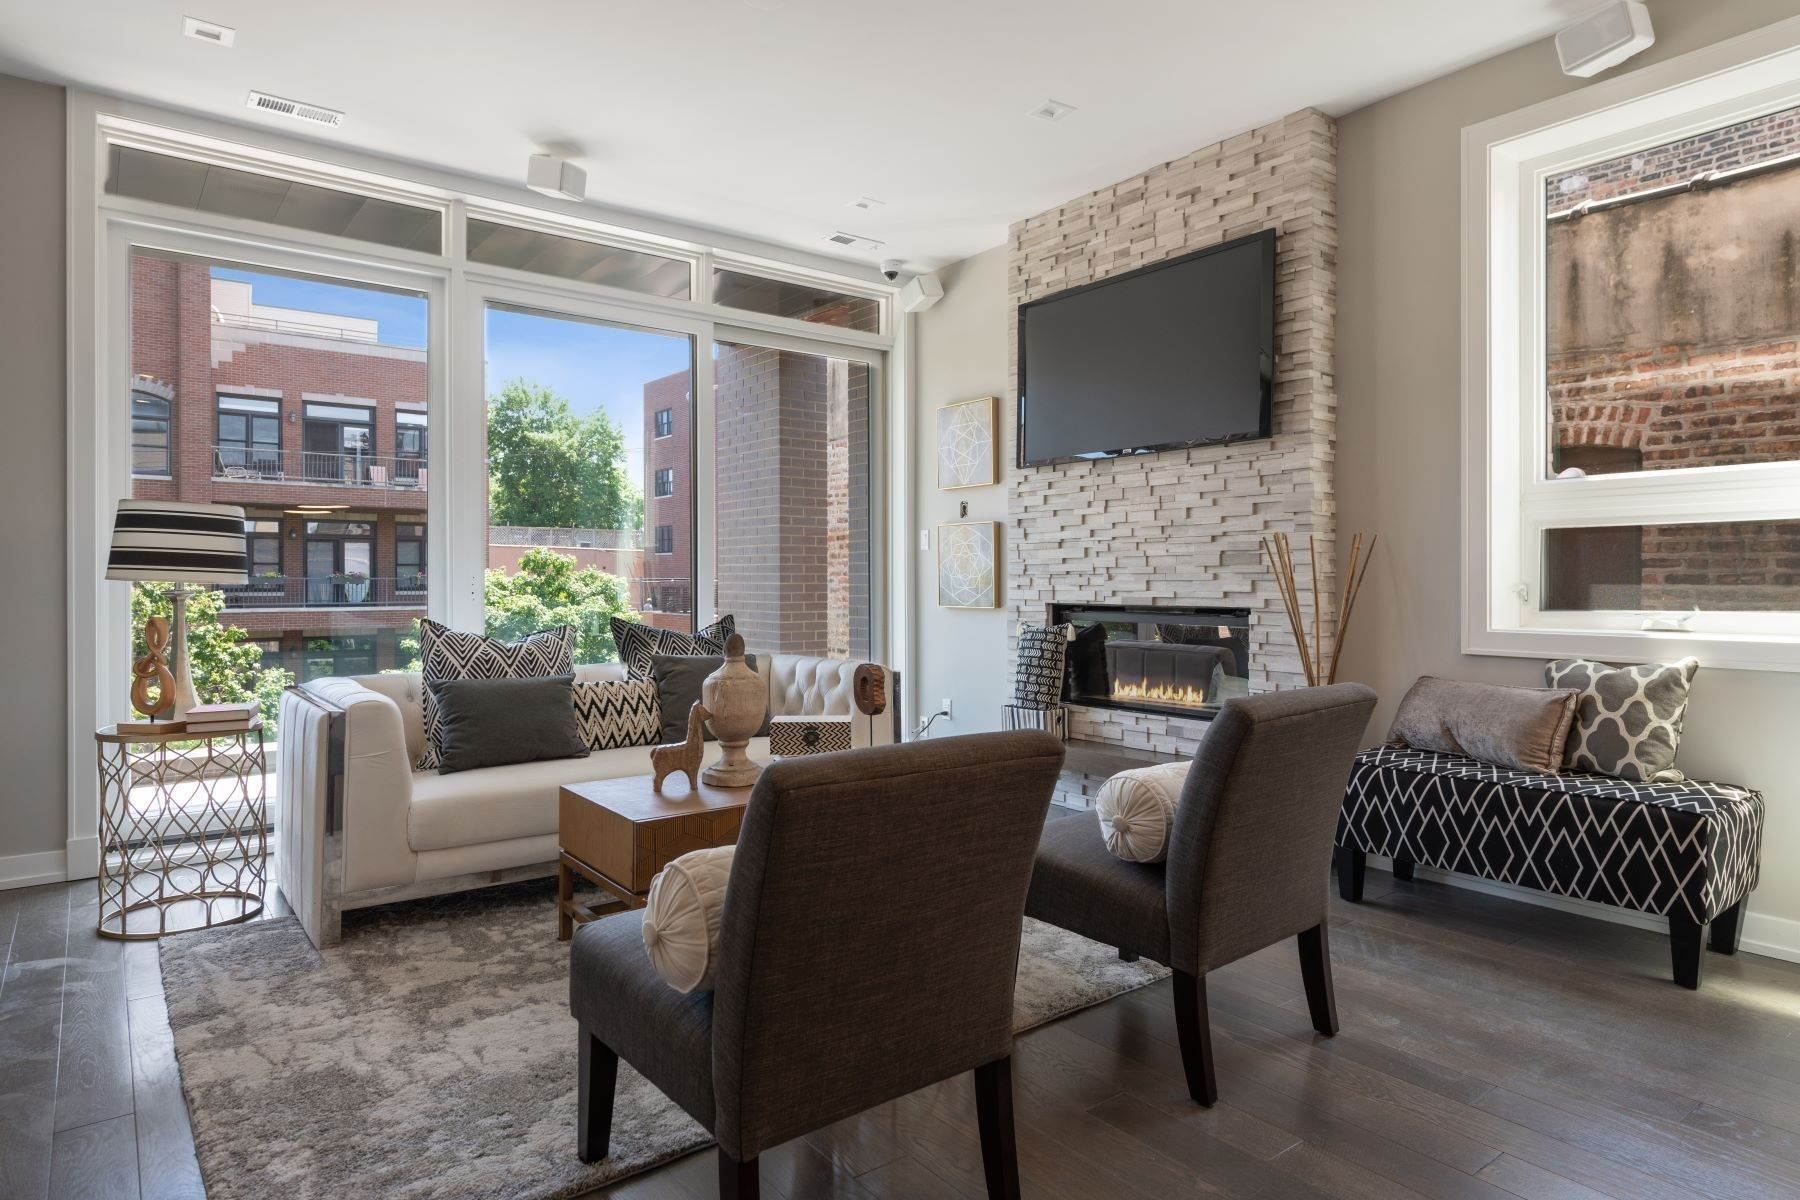 Duplex Homes for Sale at New Construction Duplex Penthouse 456 N May Street, Unit 3 Chicago, Illinois 60642 United States